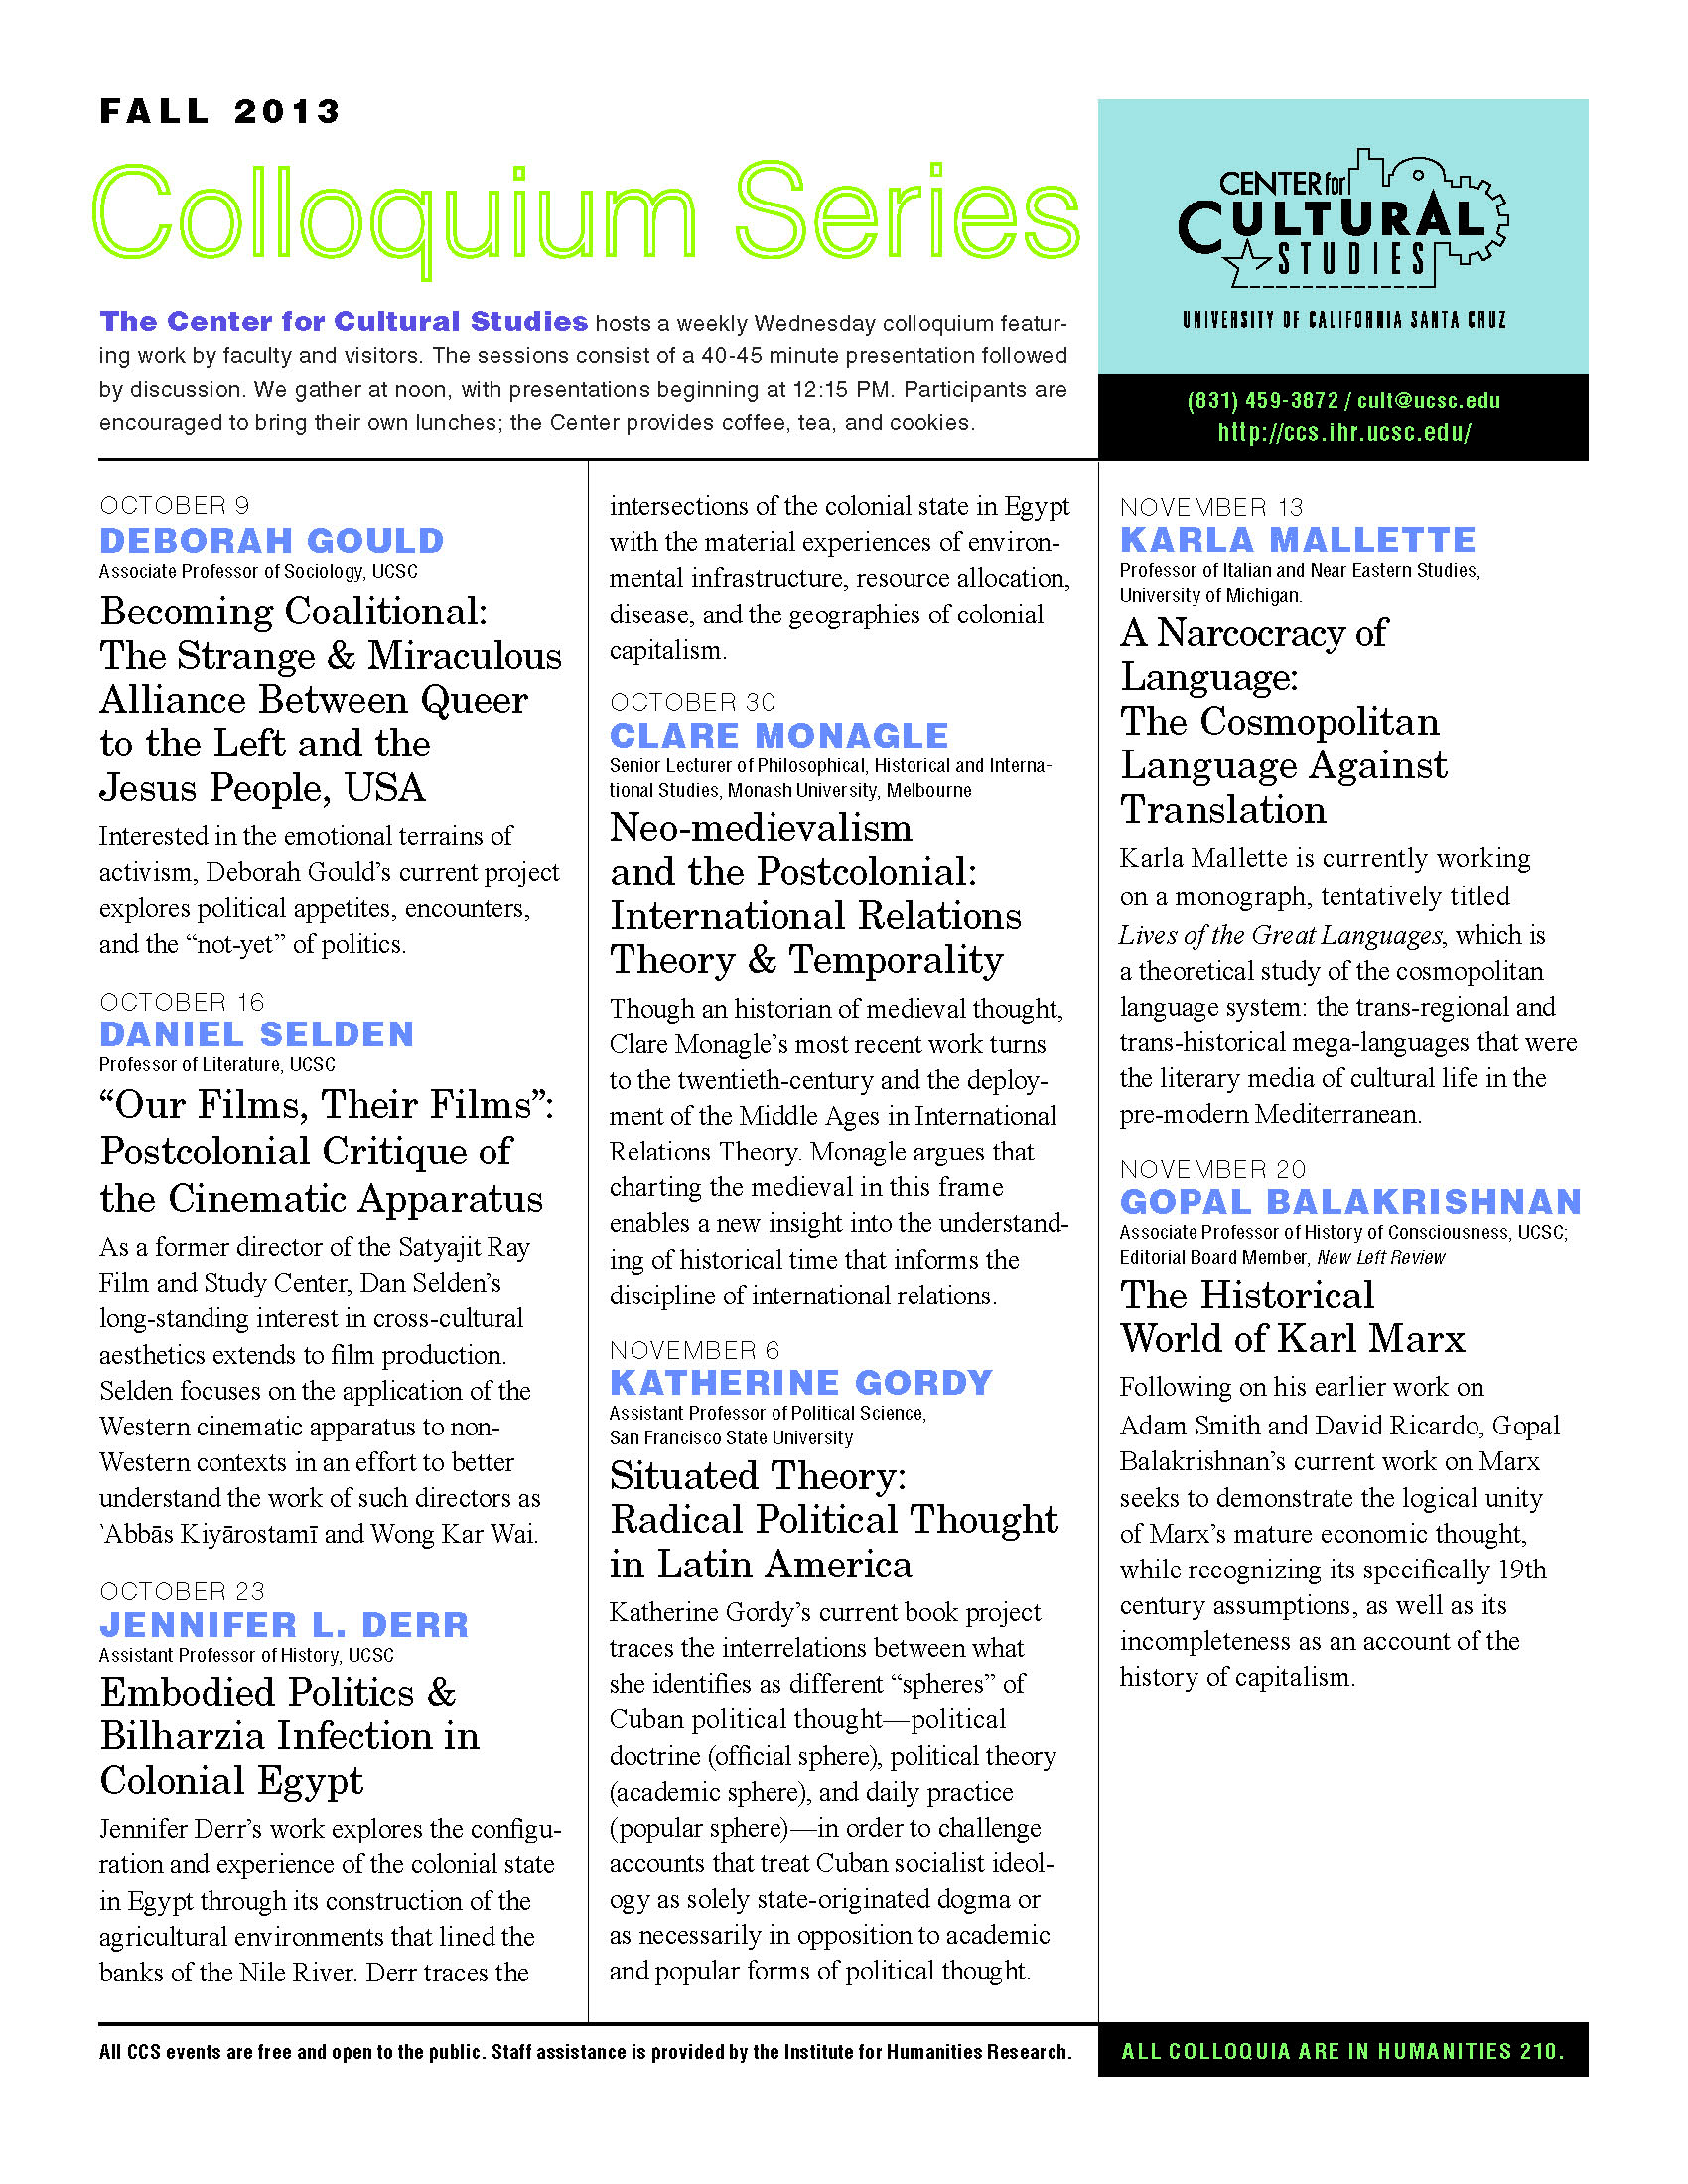 CCS_Newsletter_Fall2013_Page_1